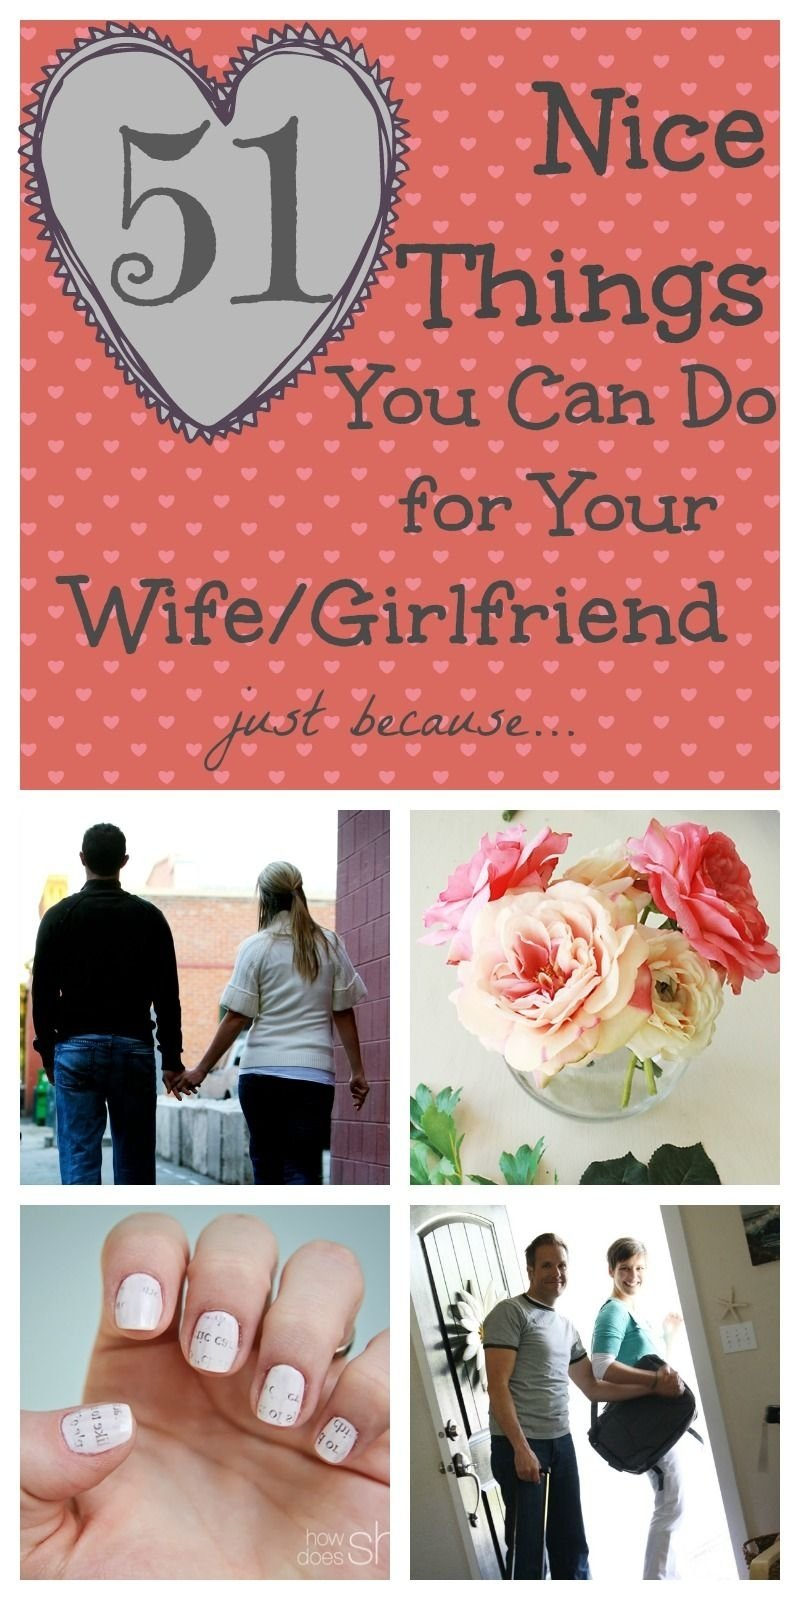 nice things to do for your wife - 50 ideas that will make her happy